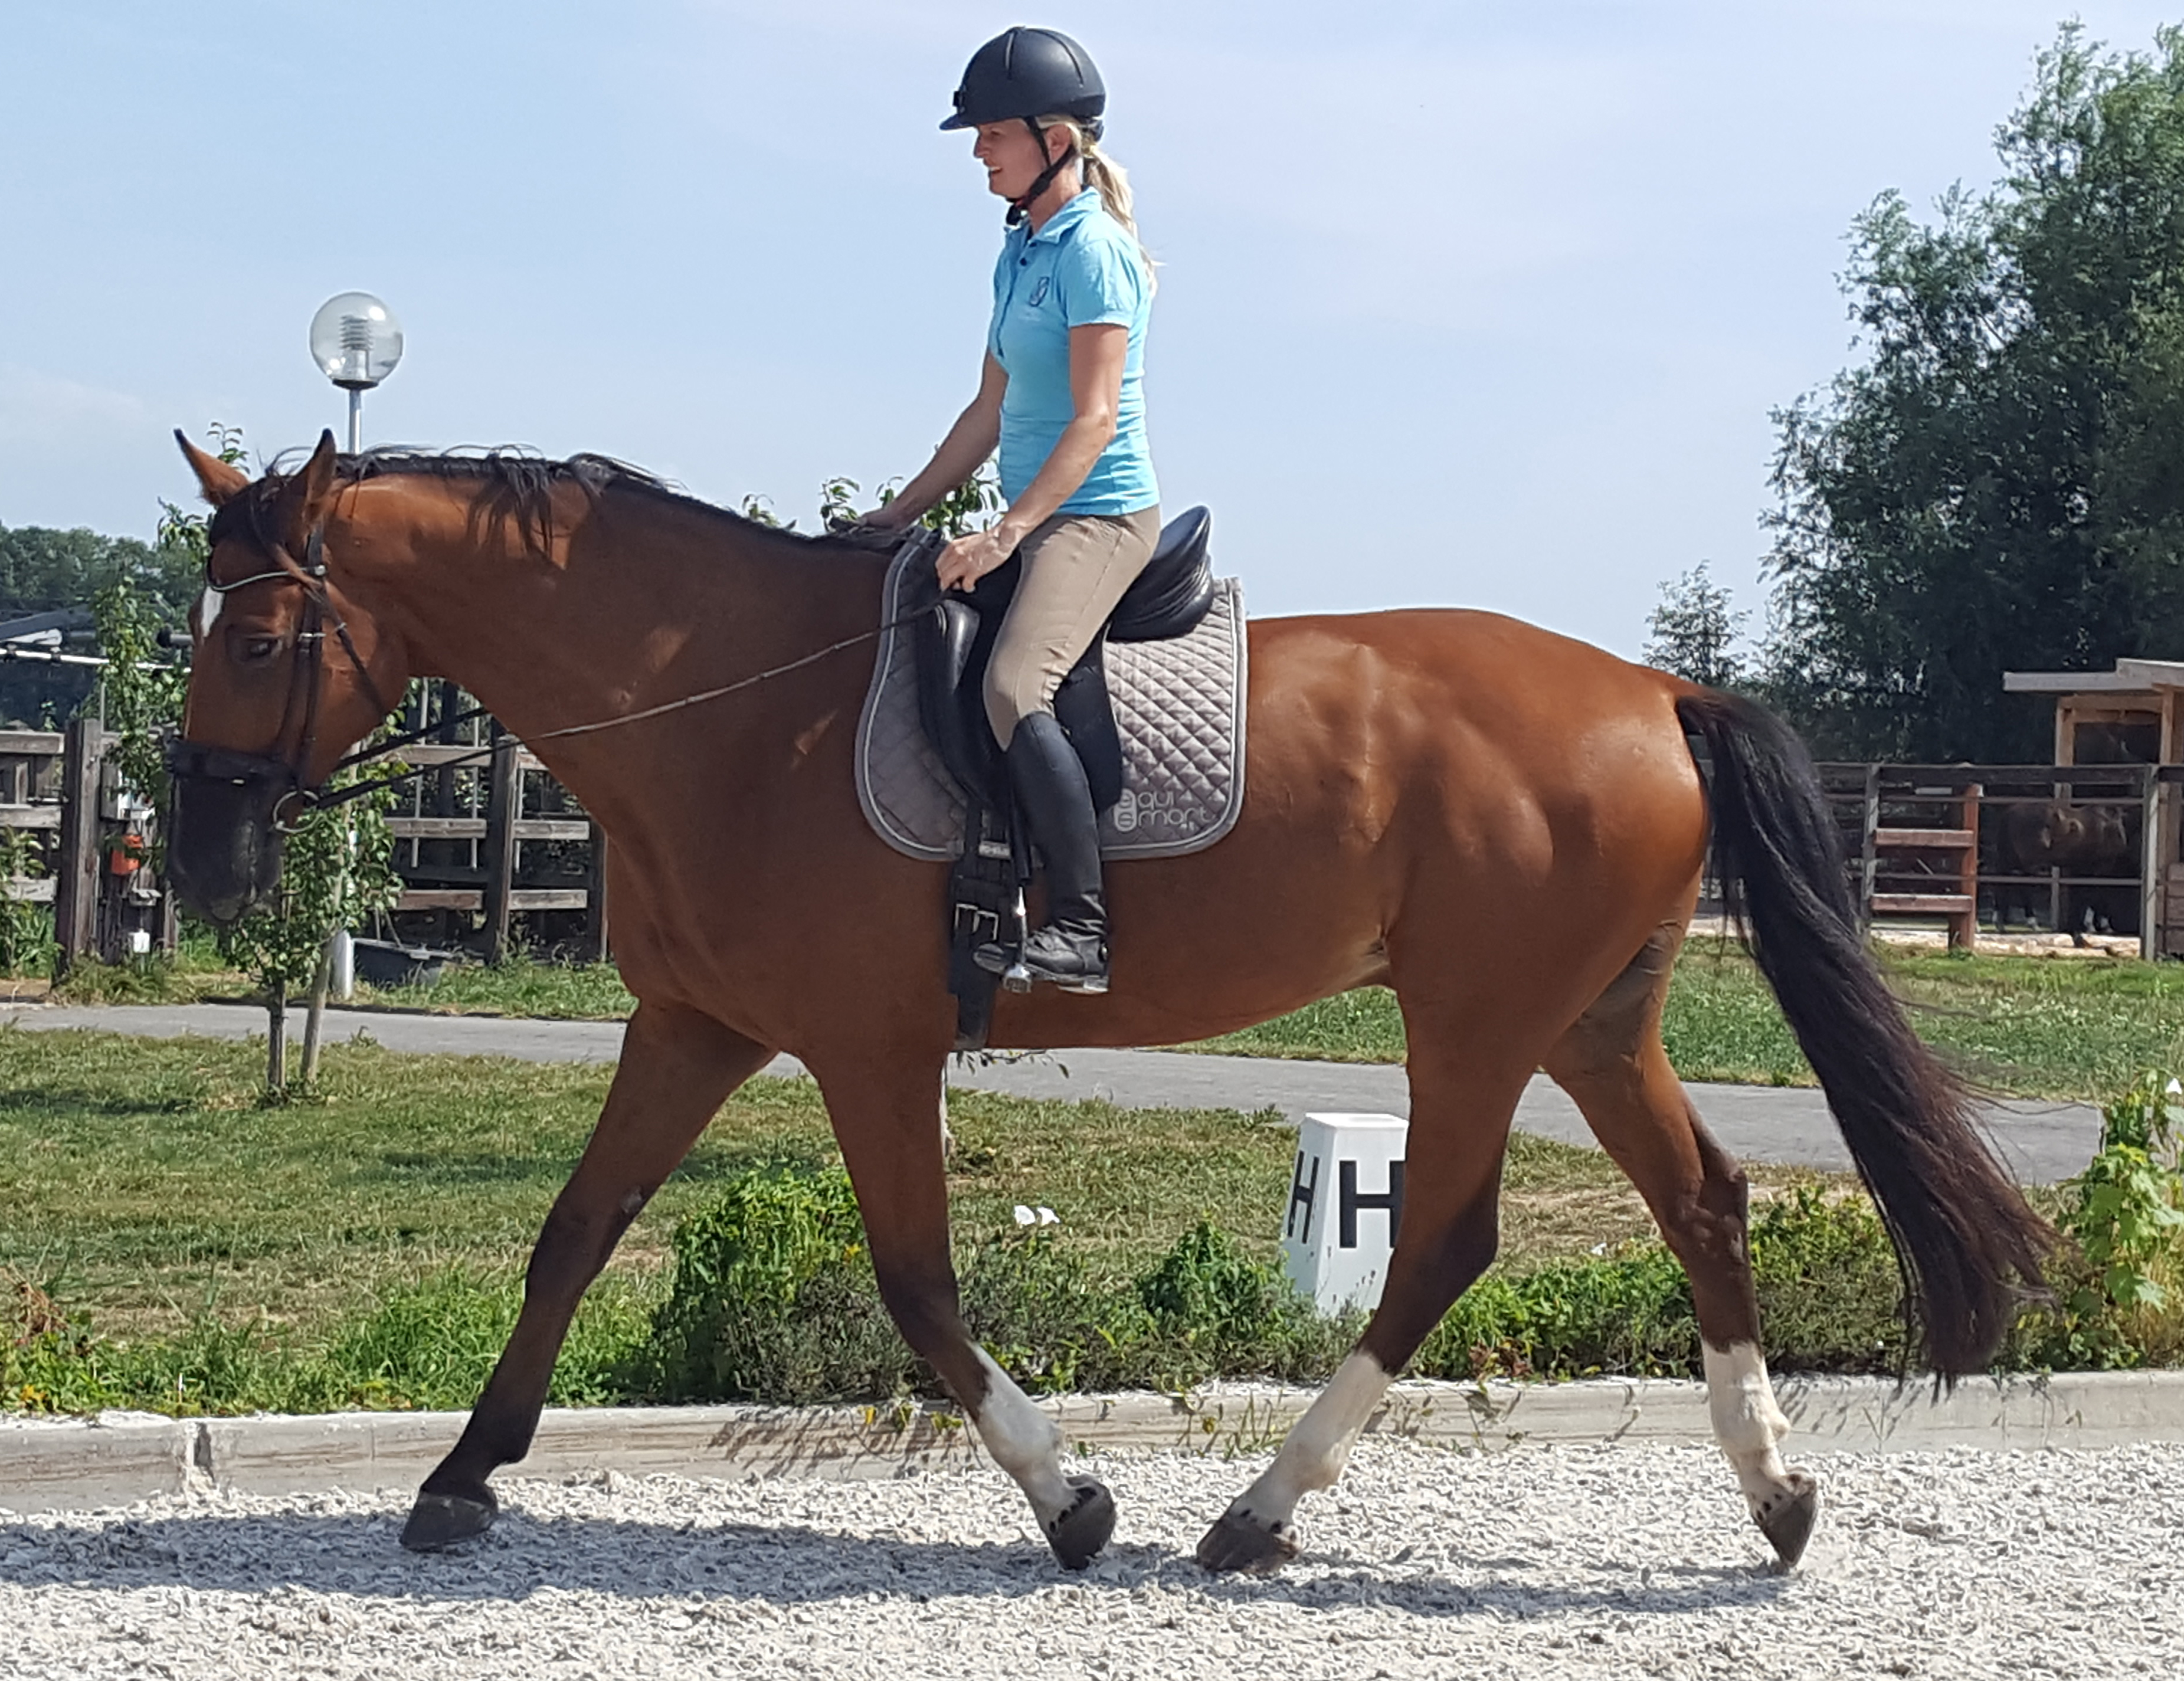 The Equine Neck As An Indicator Of Good (Or Bad) Training